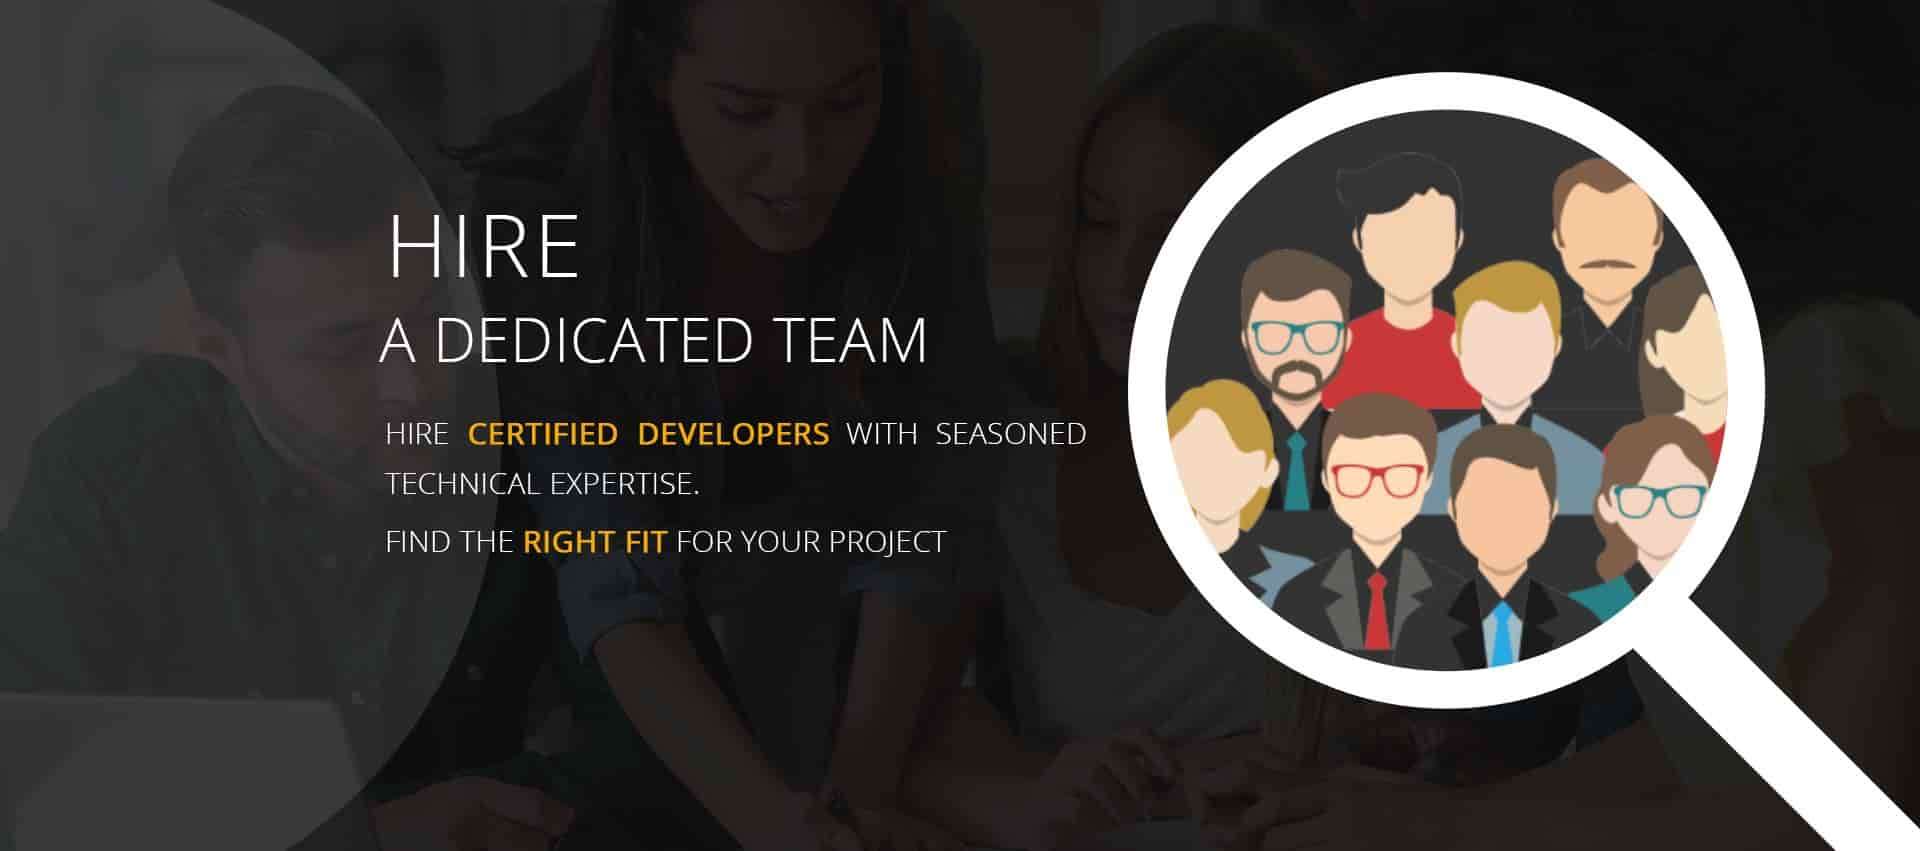 Hire a Dedicated Team